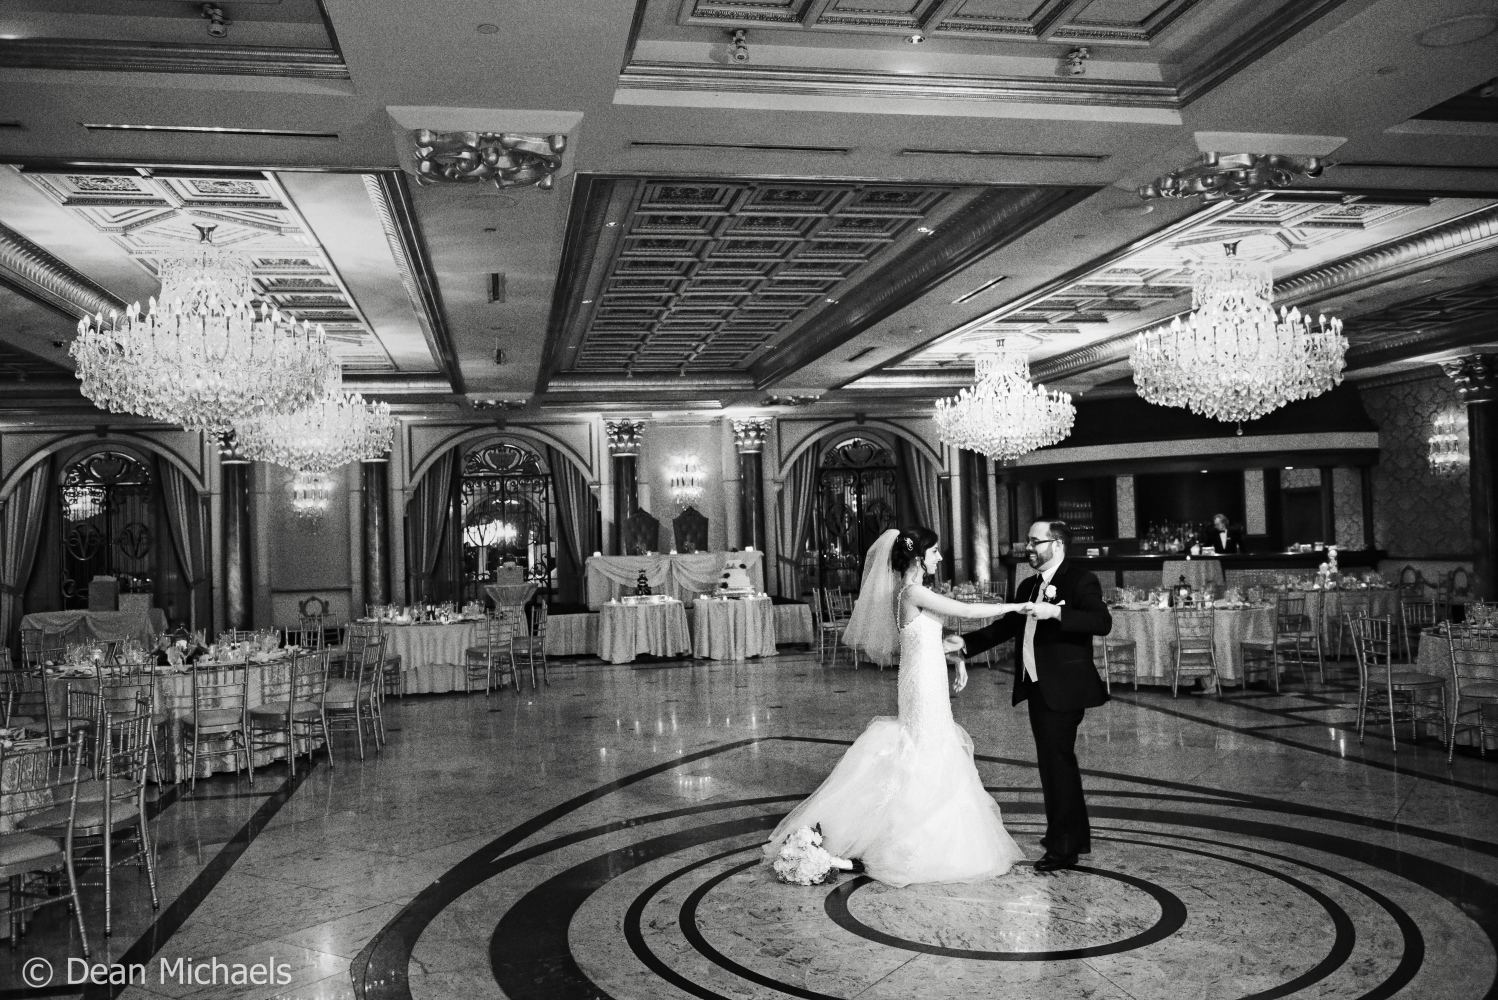 wedding-photographer-gallery-2-K9FPKJU8EL6Q.jpg